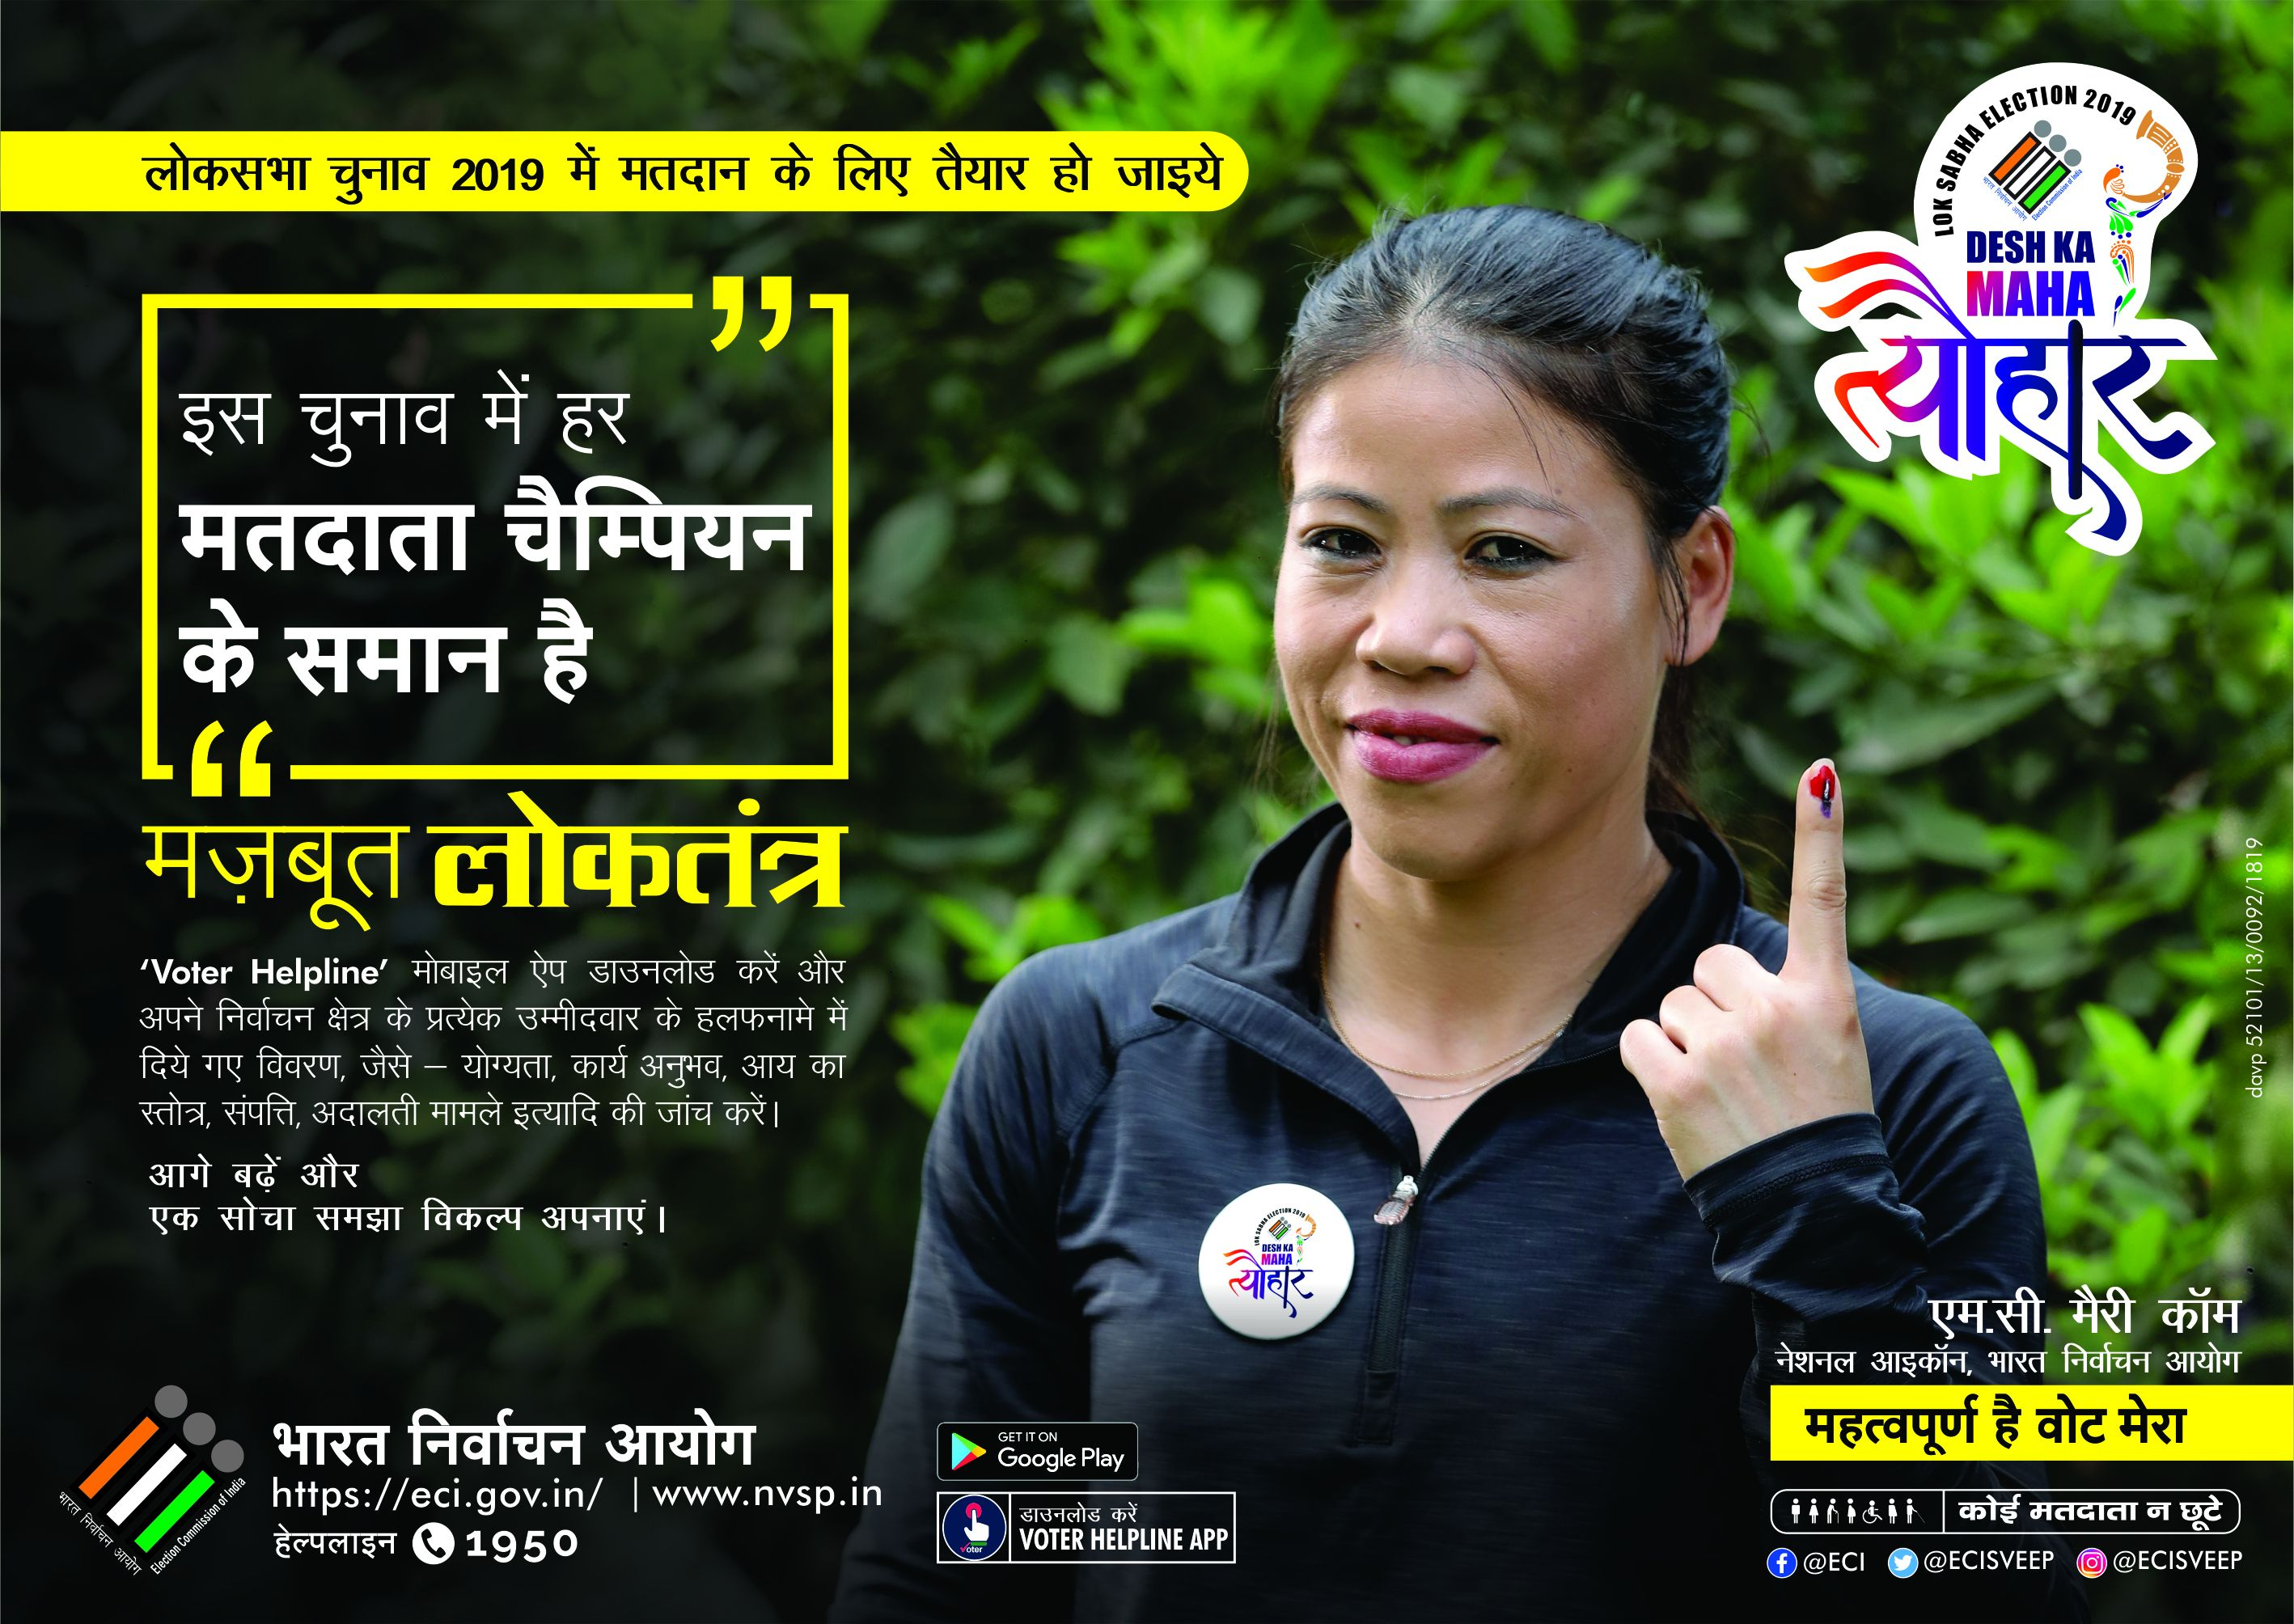 Check Your Candidate, Mary Kom